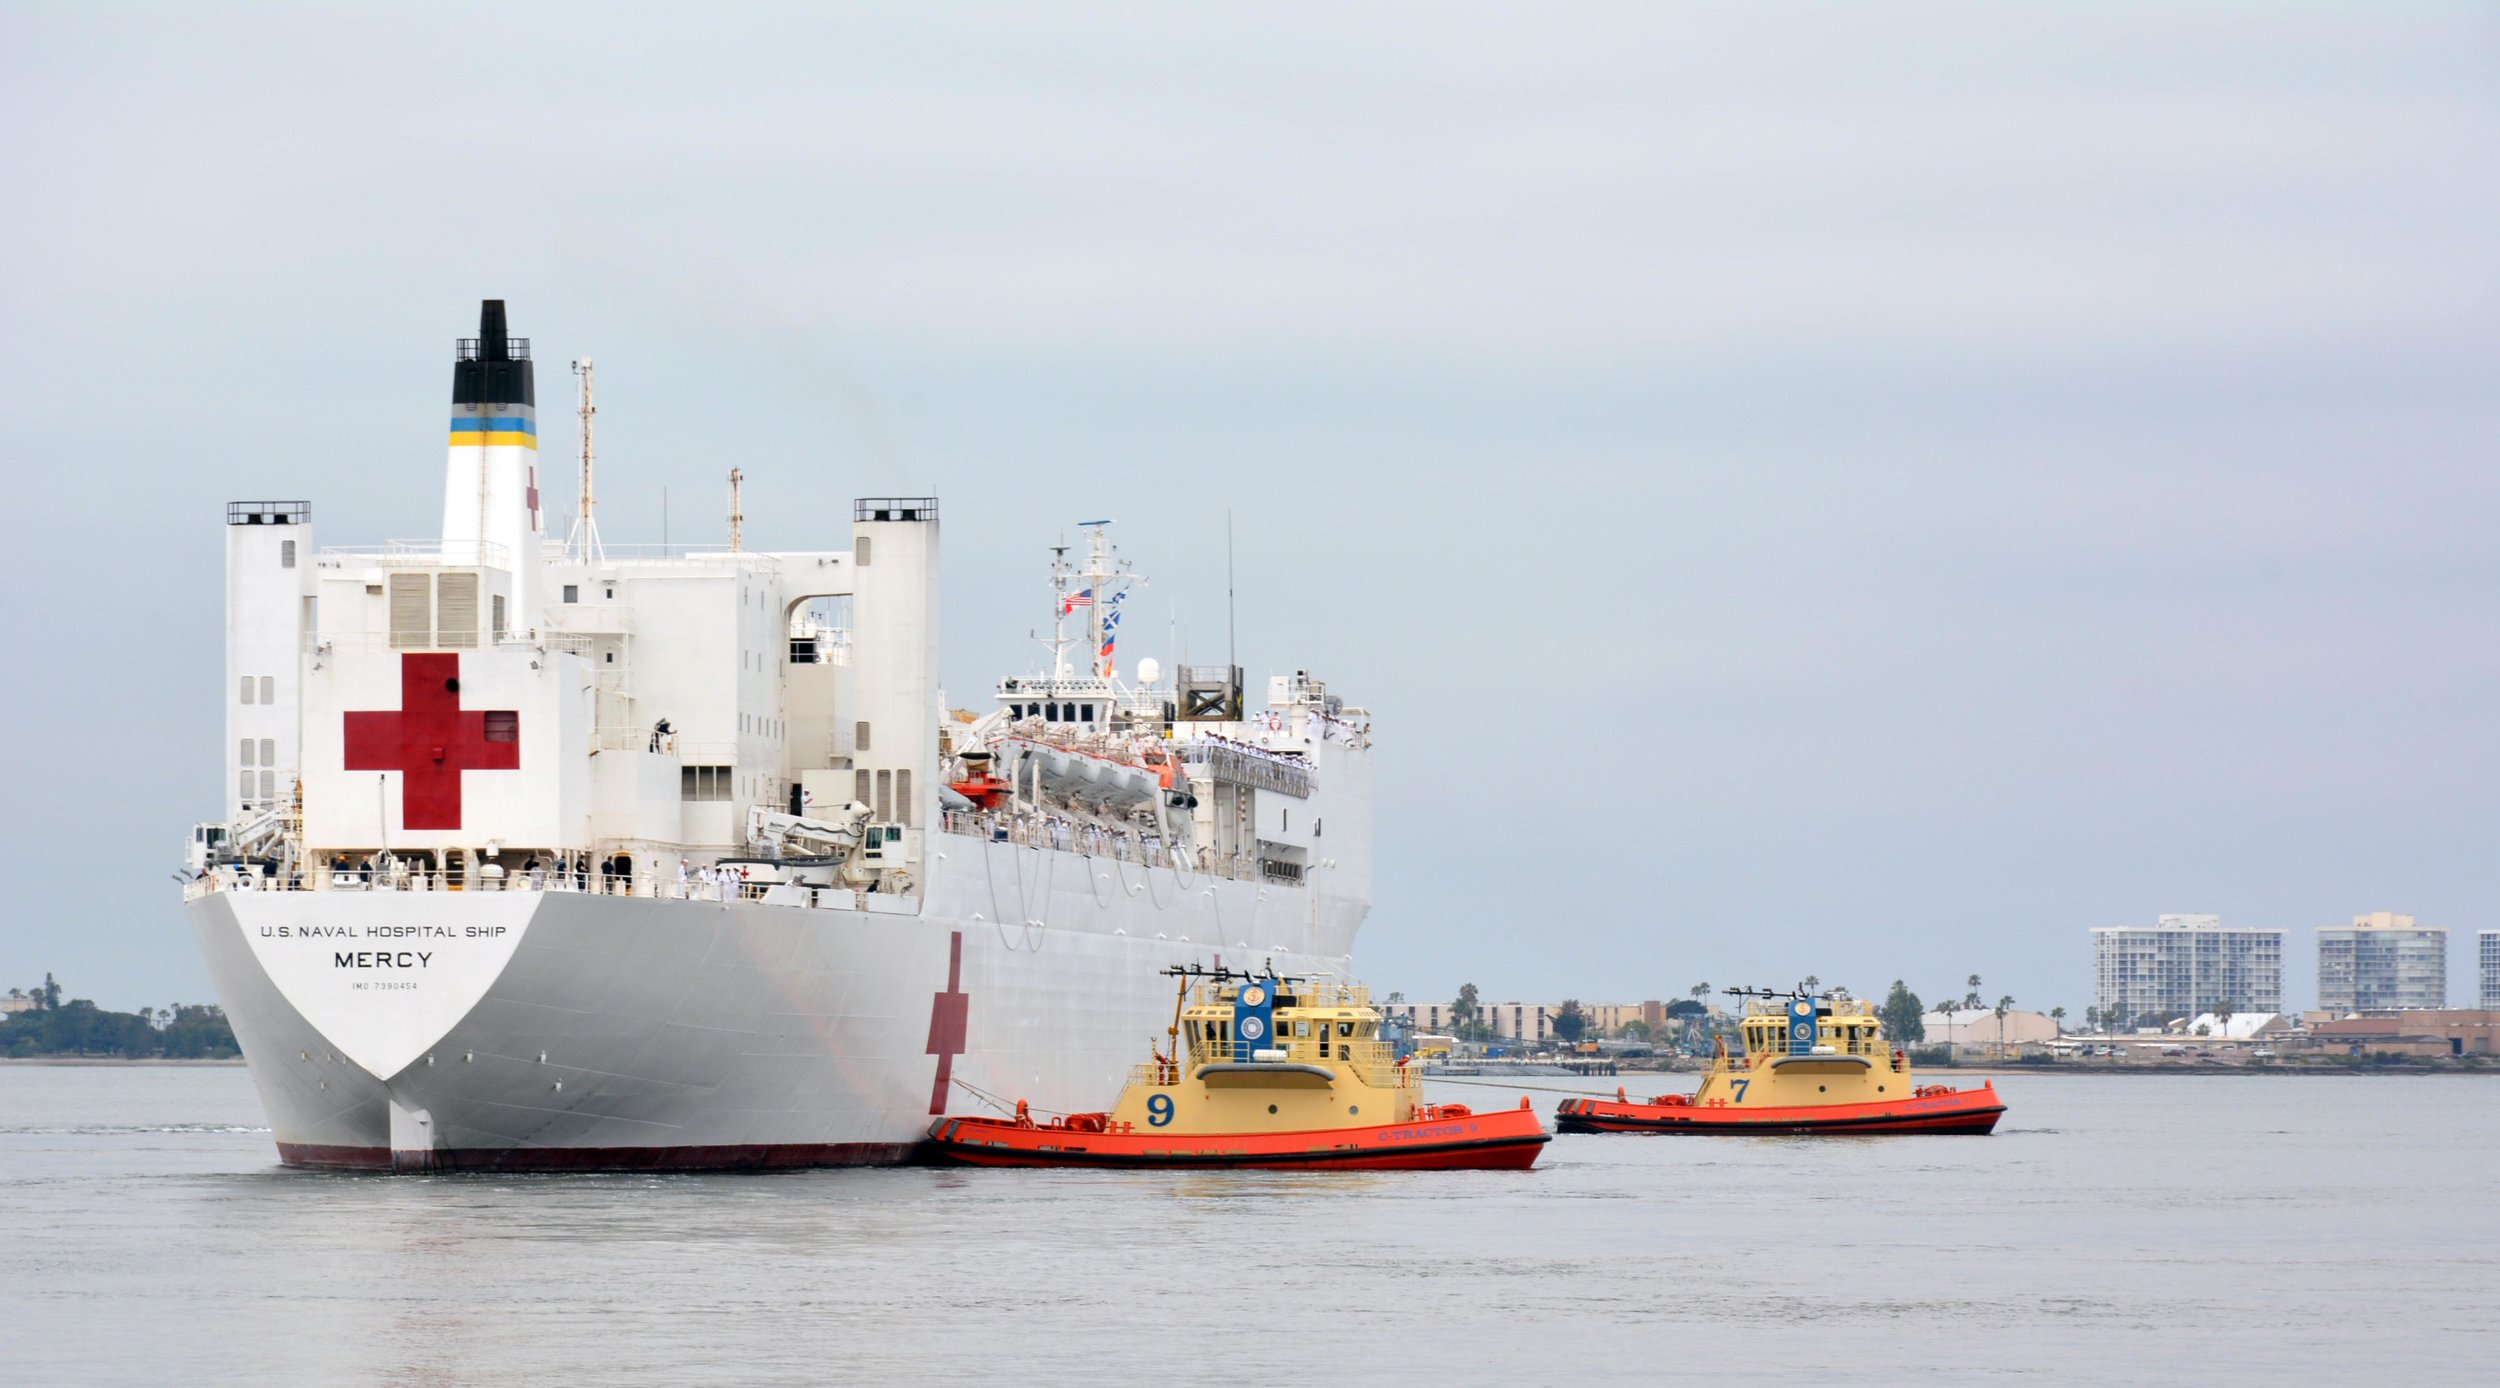 USNS Mercy (T-AH 19) departing San Diego to participate in Pacific Partnership 2016.